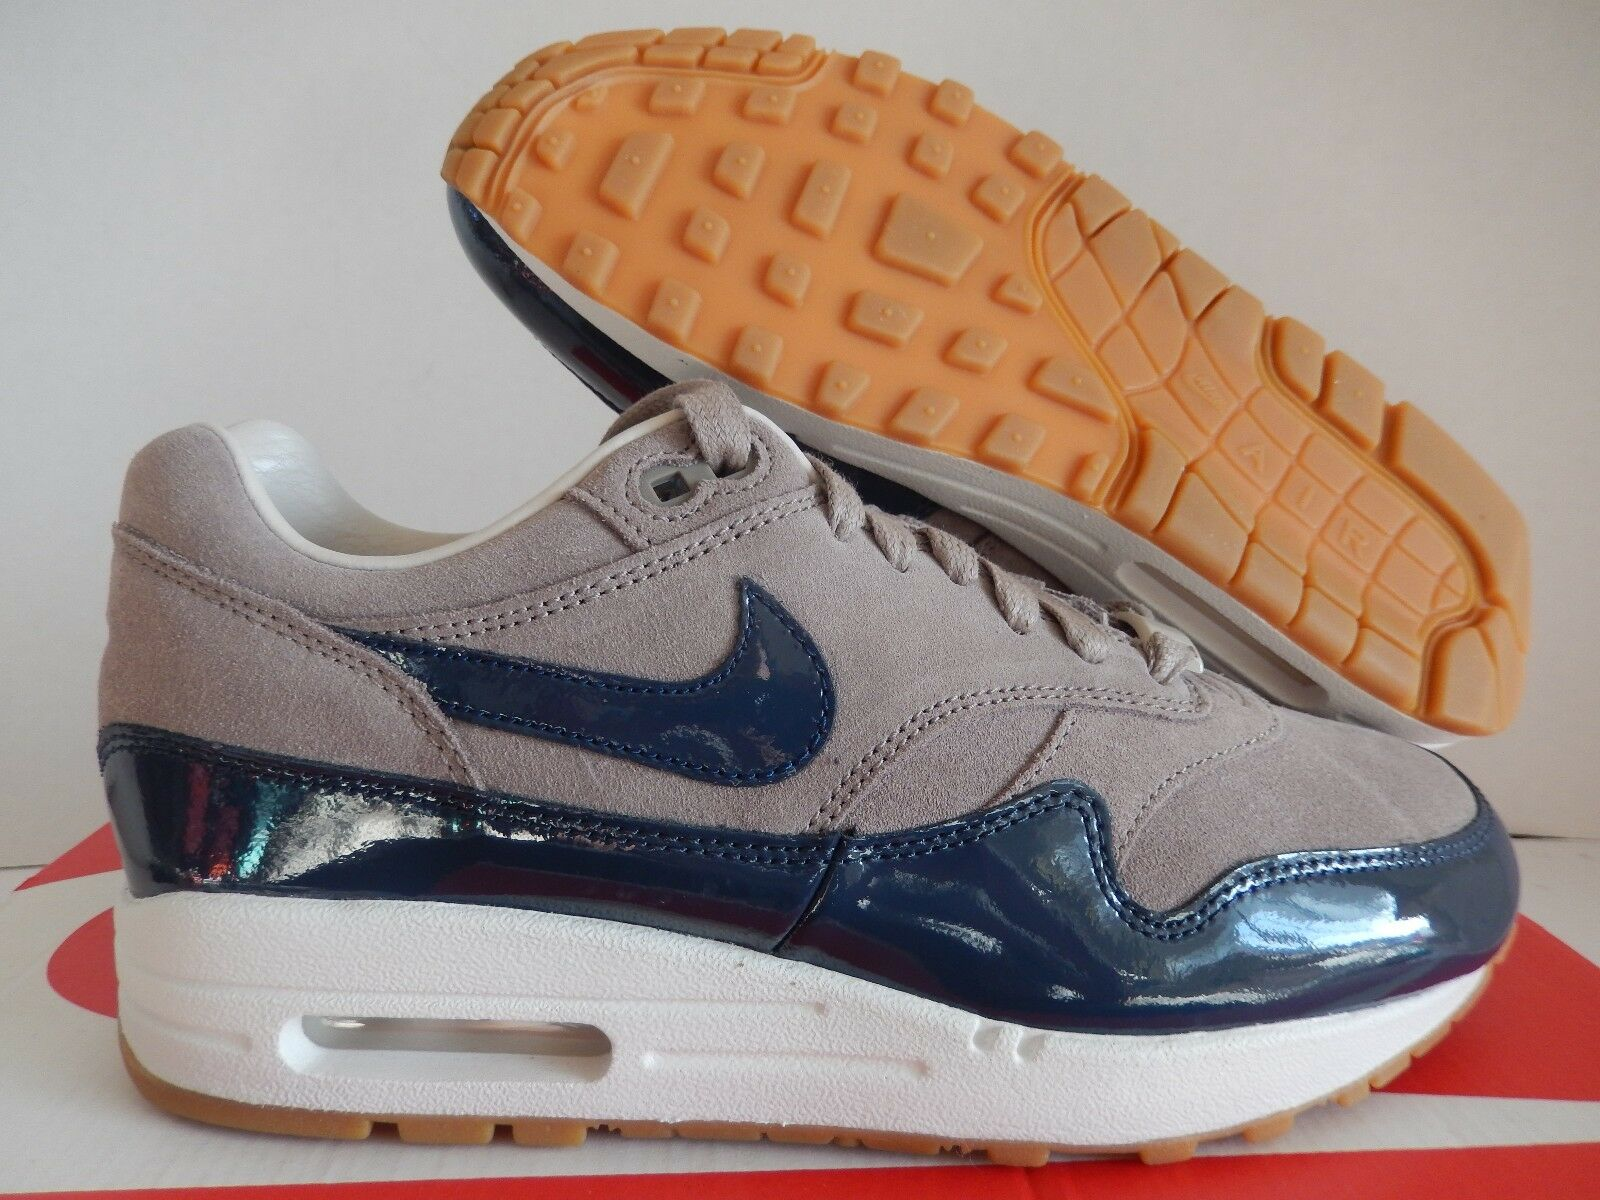 WMNS NIKE AIR MAX 1 ID BROWN-blueE SZ 7